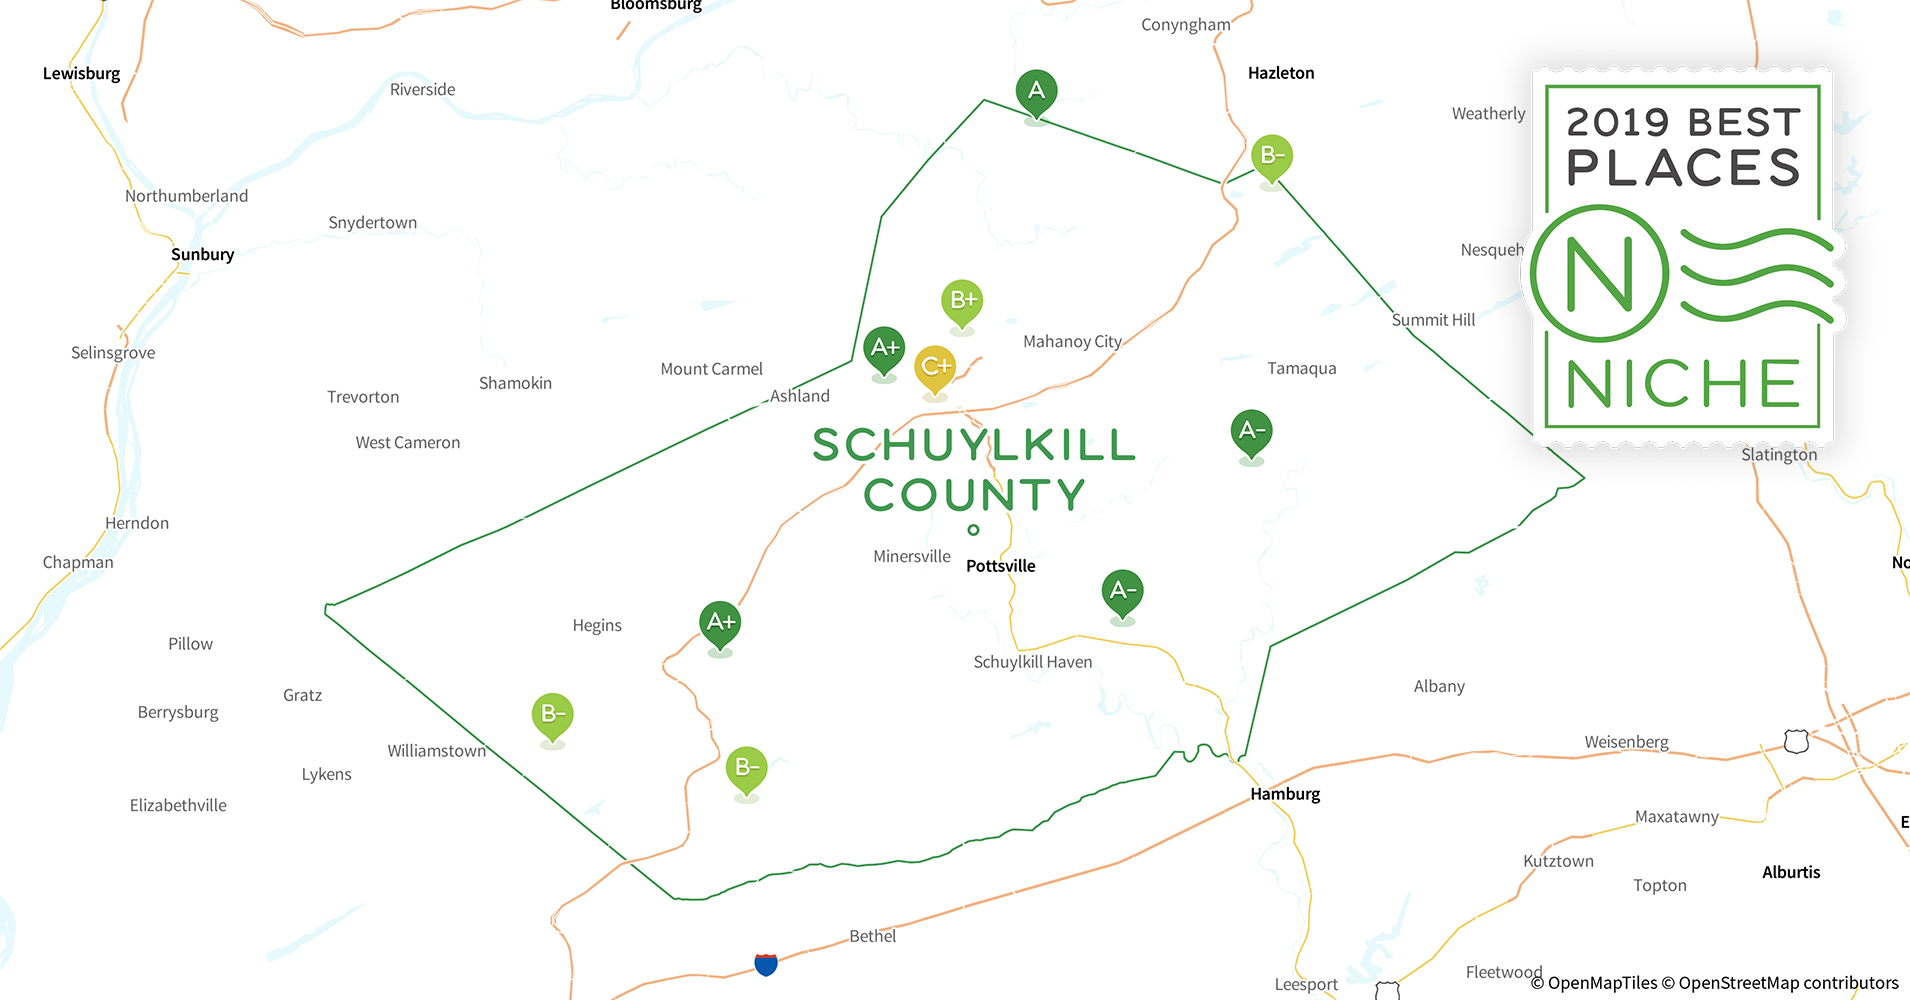 2019 Best Places to Live in Schuylkill County, PA - Niche Map Of Cities Near Philadelphia Pa on city of dover pa, map of 19124, map of center city pa, map of pa towns, map of west philly pa, map of cities surrounding philadelphia pennsylvania, map of phila metro area, new york city on a map of pa, road map of phila pa,